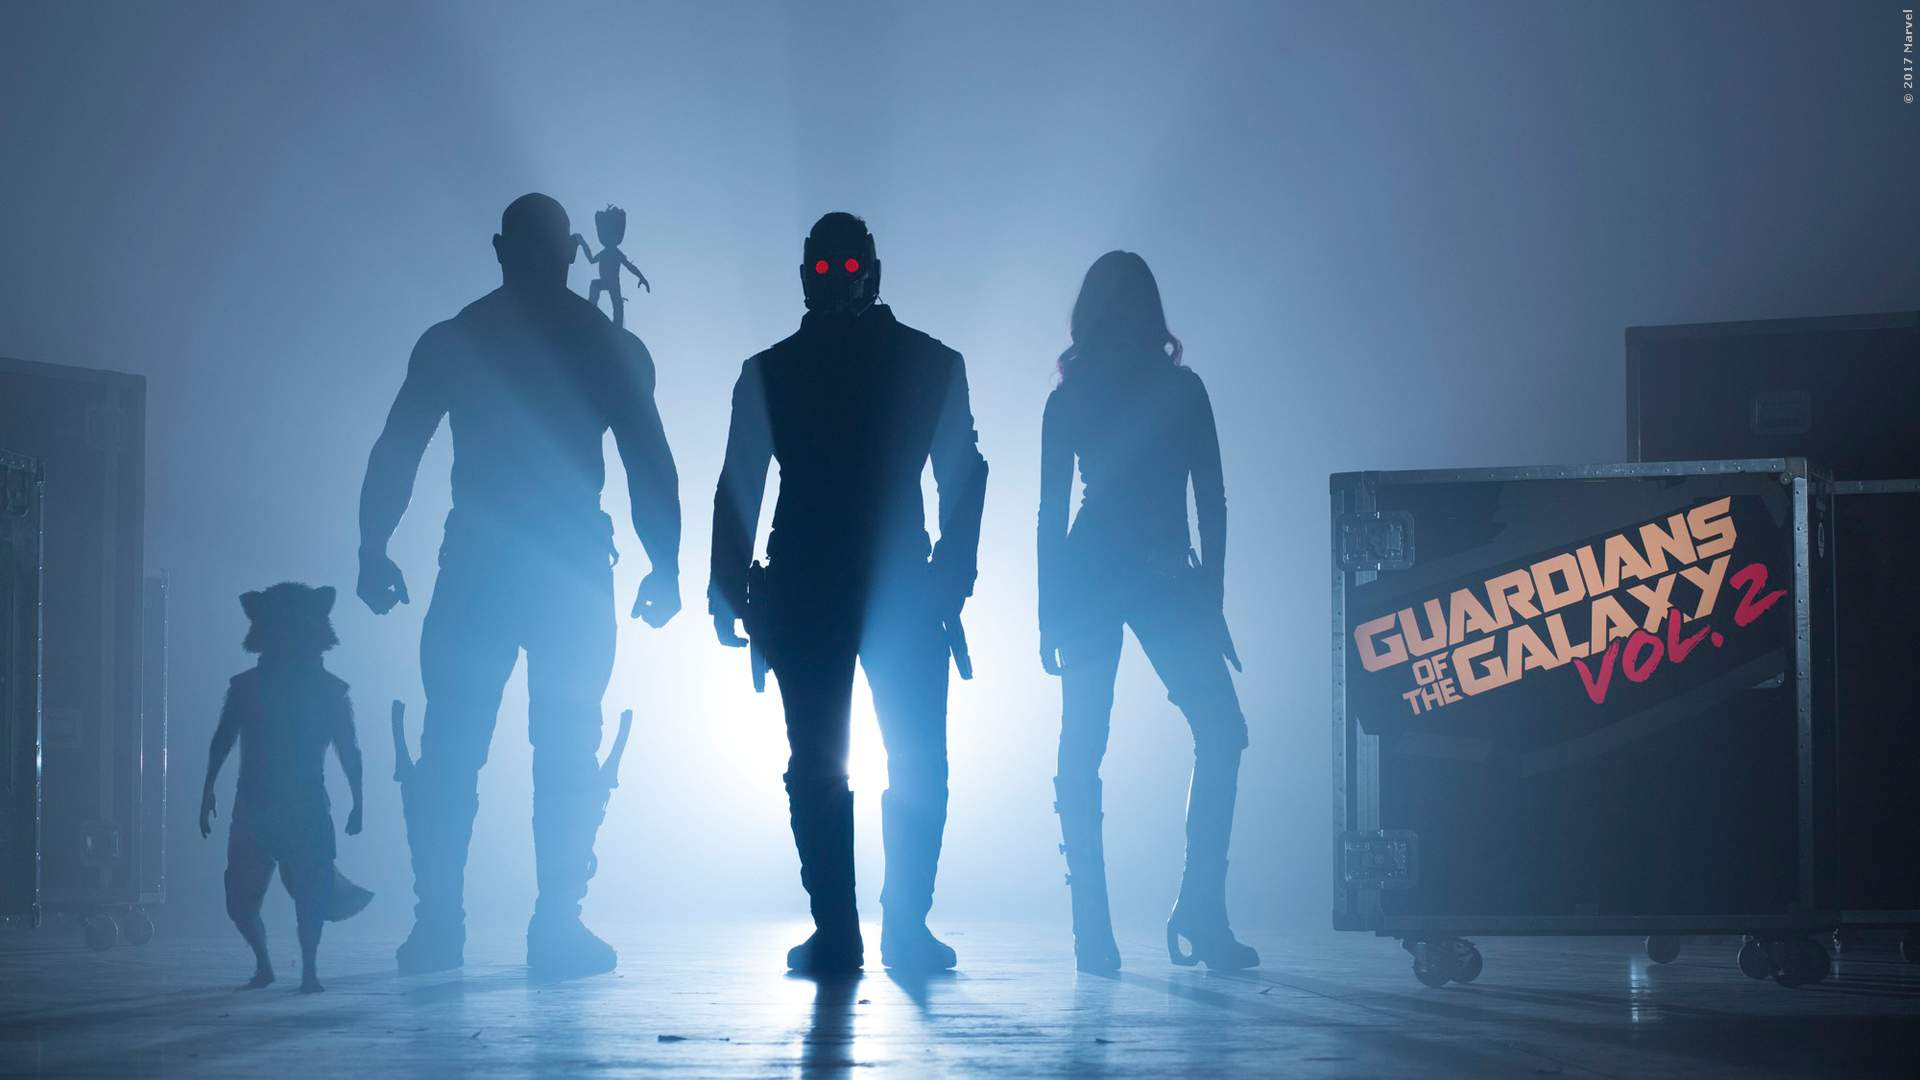 Guardians Of The Galaxy 2 - Bild 2 von 2